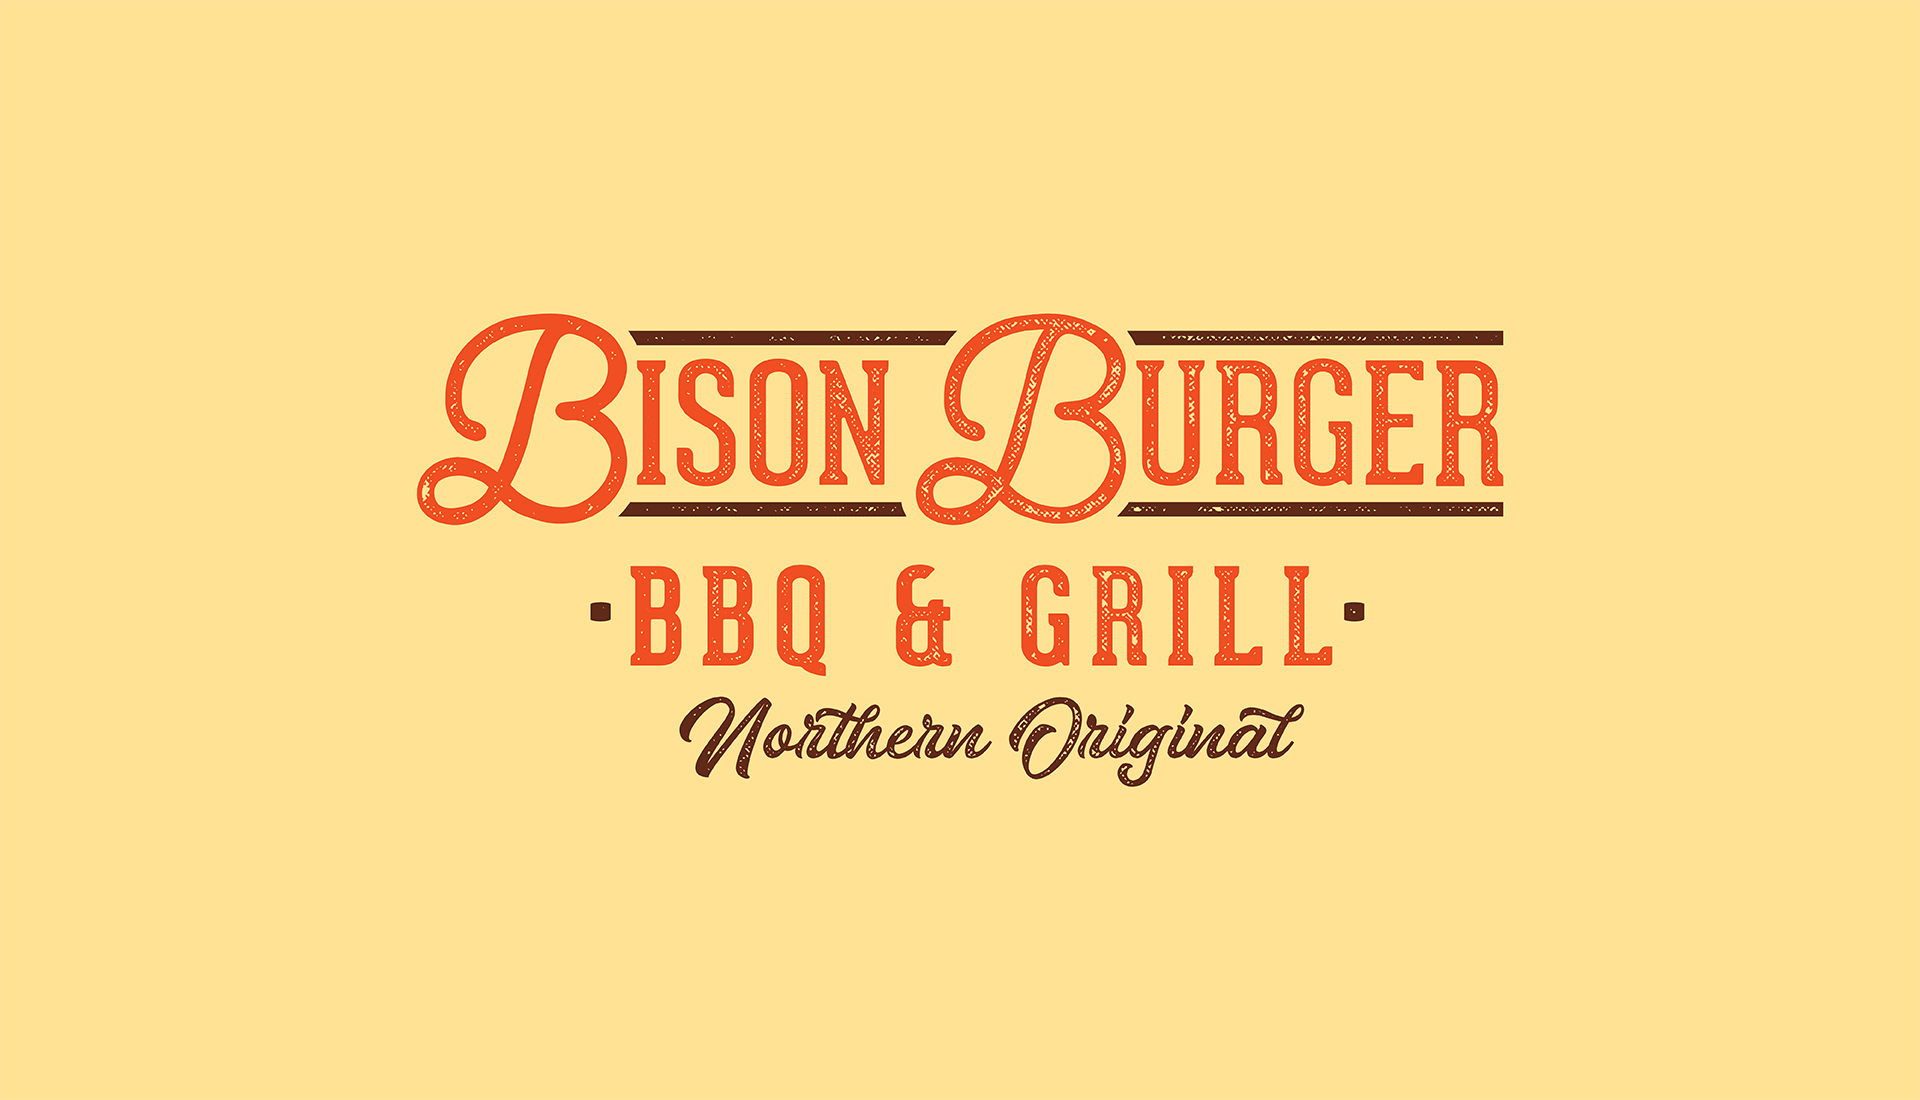 Bison Burger BBQ & Grill | Tertiary Logo, Authentic Indigenous Cuisine, Northern Original